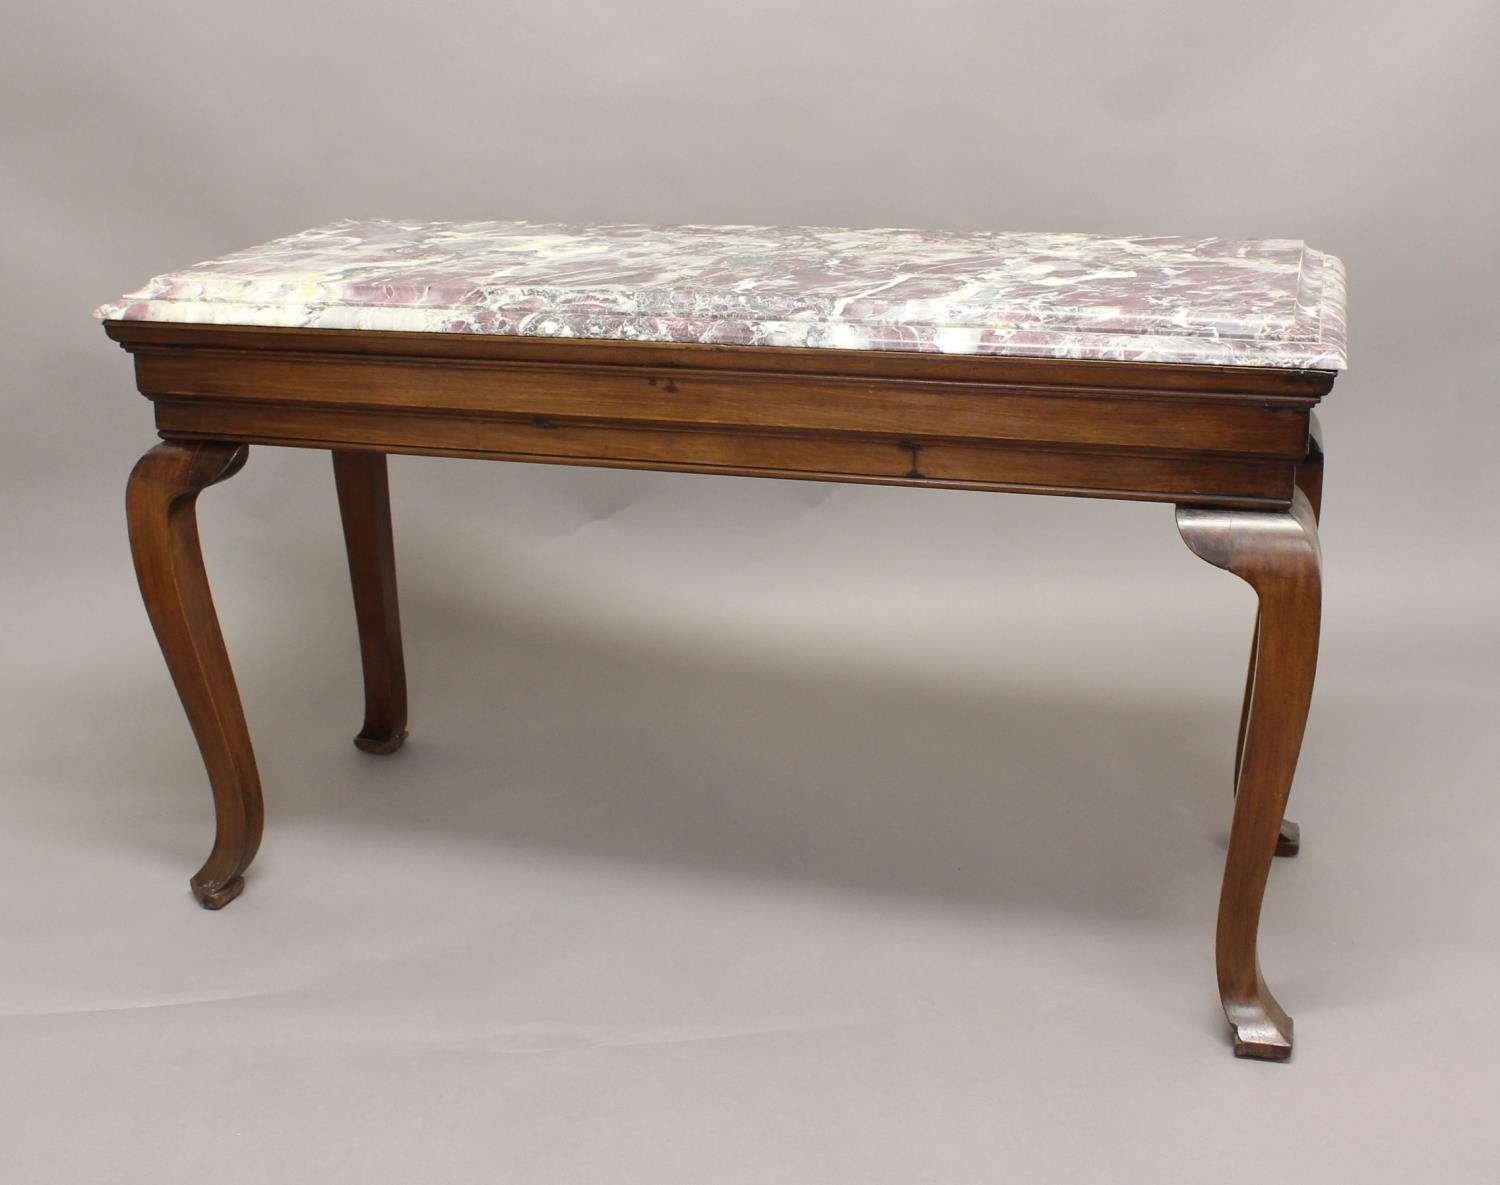 A MARBLE TOPPED CONSOLE TABLE, the rectangular top on a mahogany frame with Queen Anne style legs,